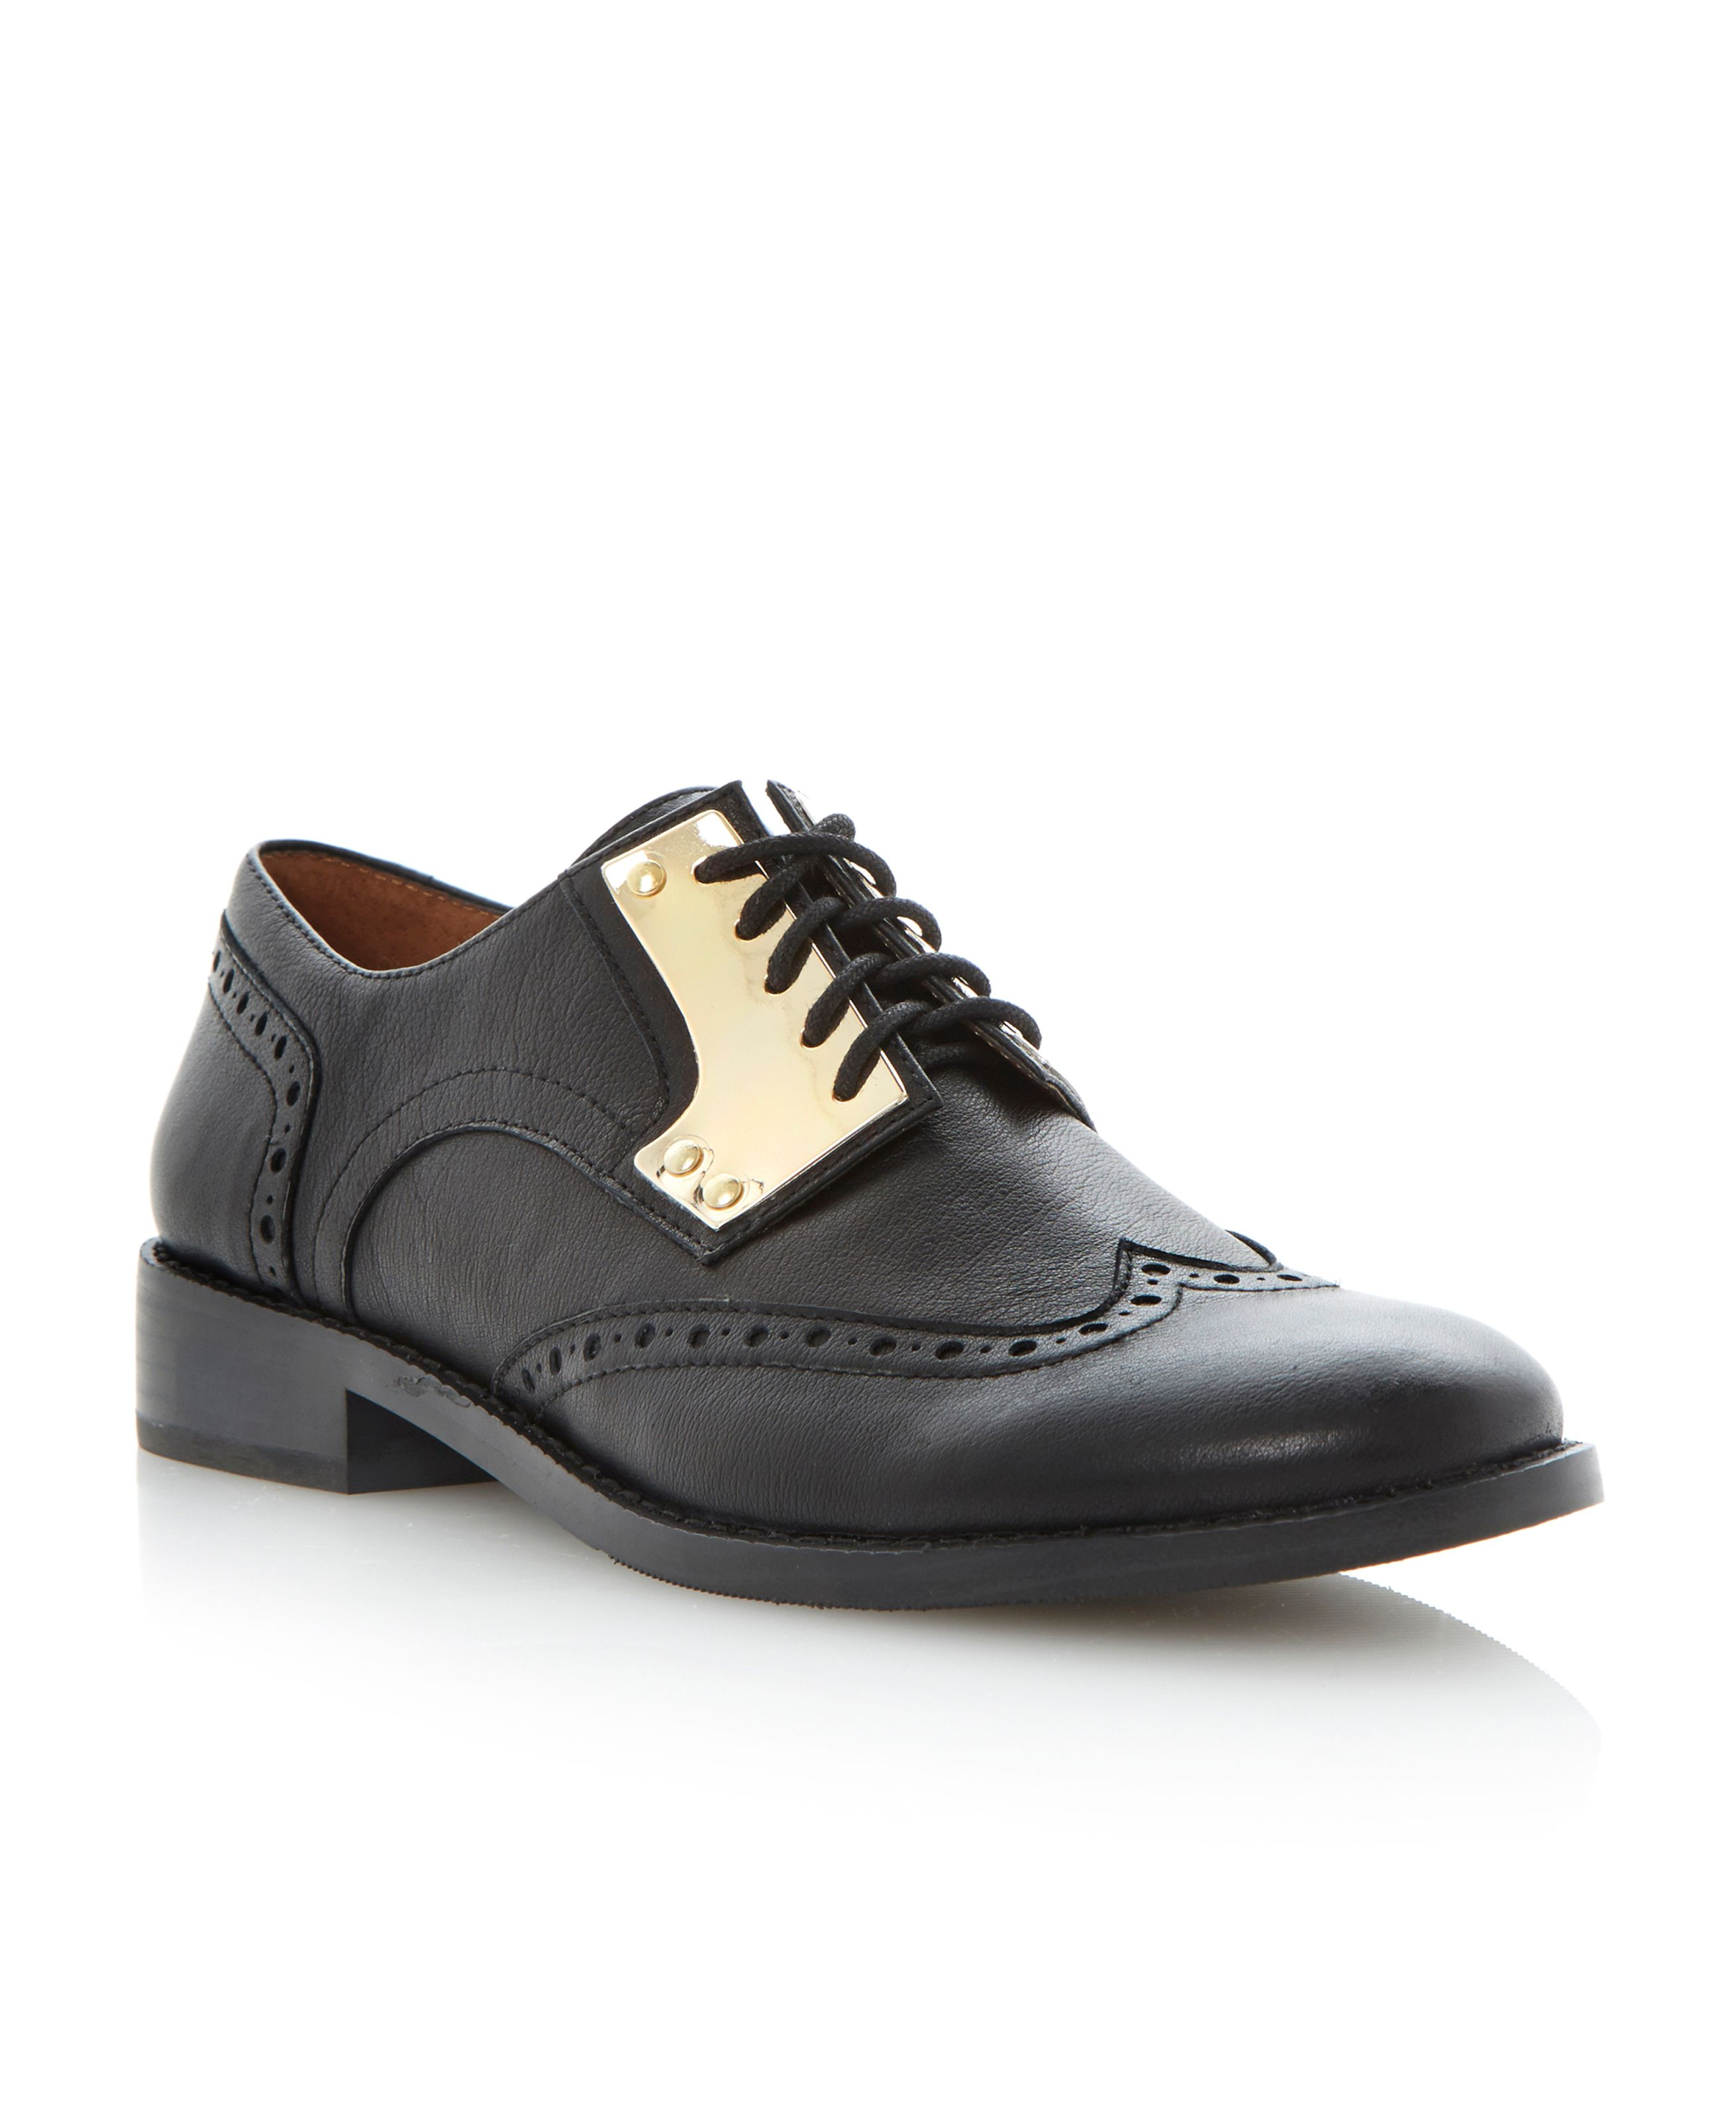 Beekman leather almond toe brogue shoes